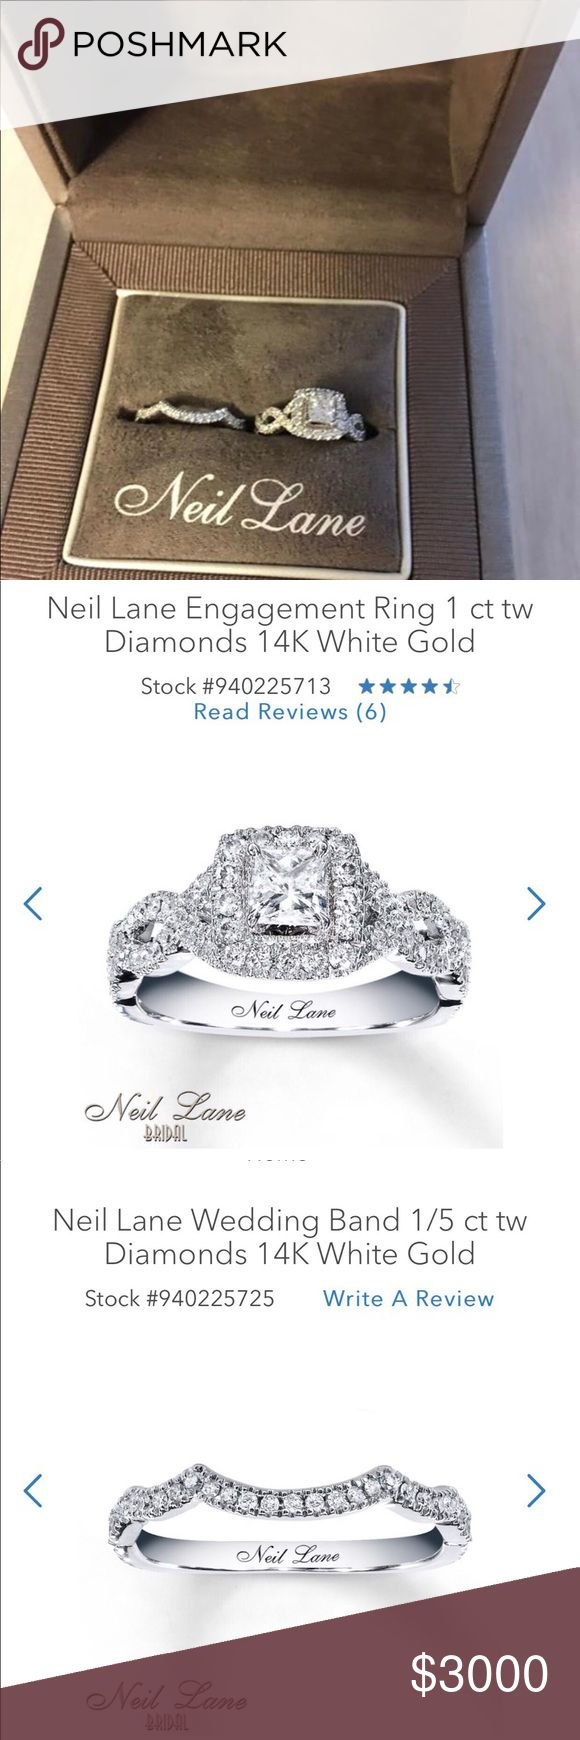 Neil Lane engagement ring/wedding band. *BRAND NEW*  Never worn! Neil Lane diamond engagement ring/wedding band. Size 5 Lifetime warranty from Kay's Jewelry neil lane Other